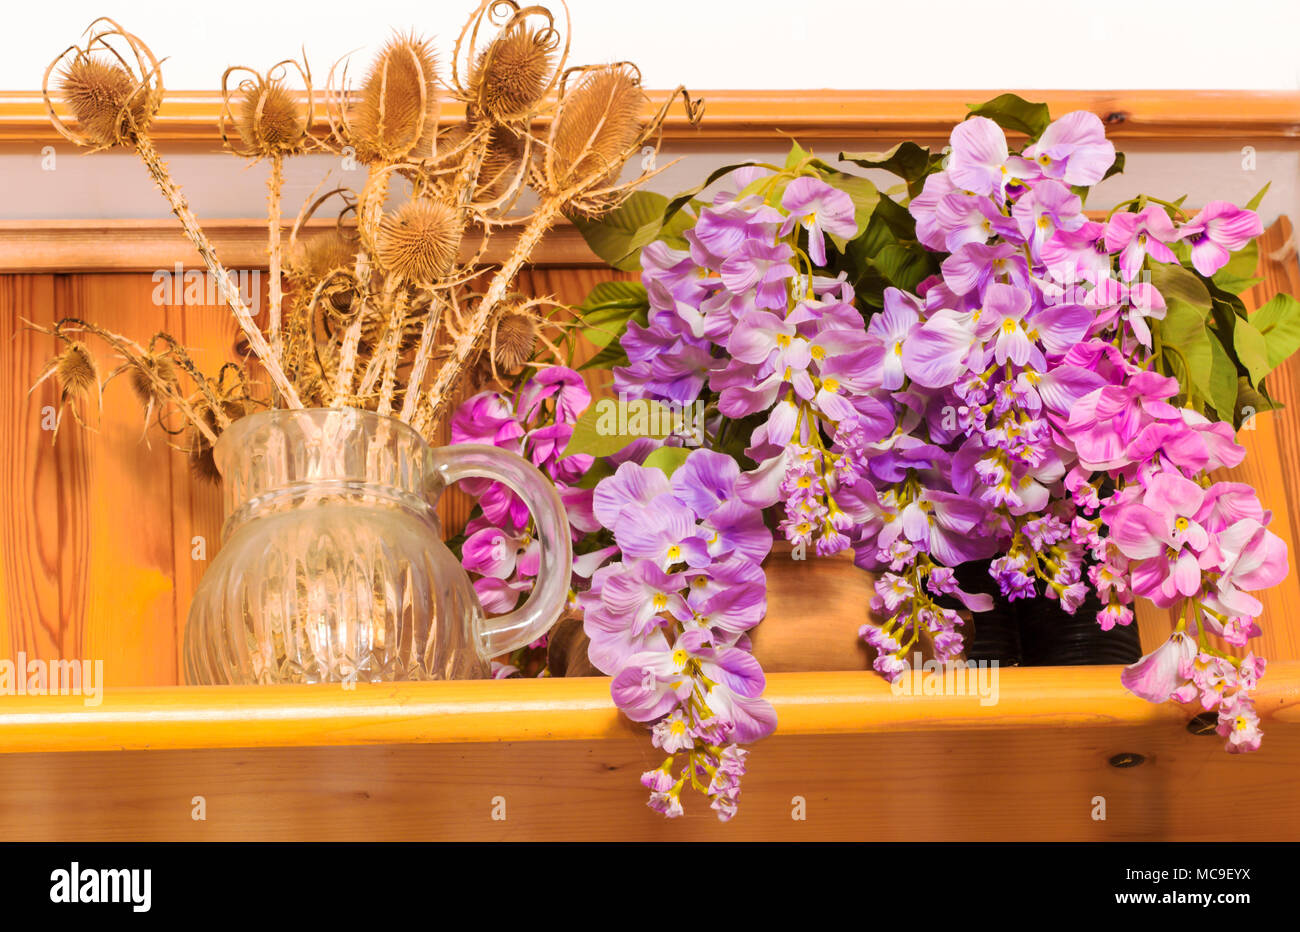 Bouquet of dried flowers in vase on wood background,Flower in vase ...